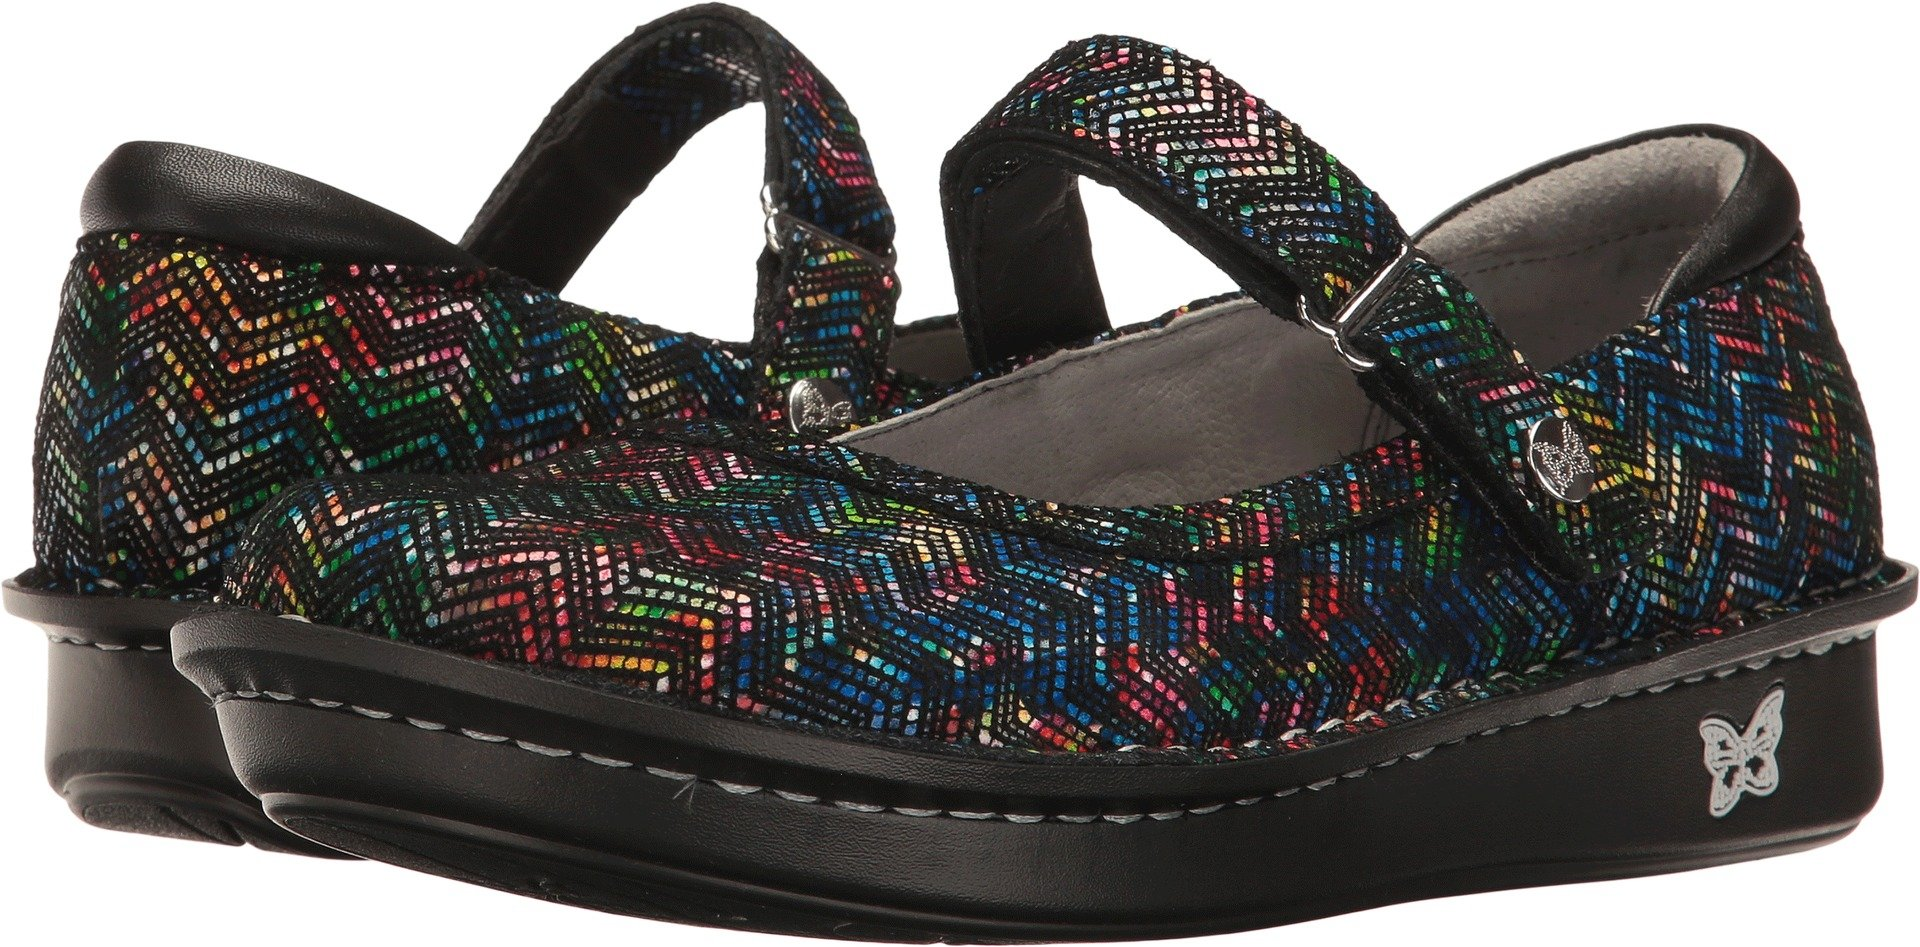 Alegria Women's Belle Ric Rack Rainbow Mary Jane Size 38